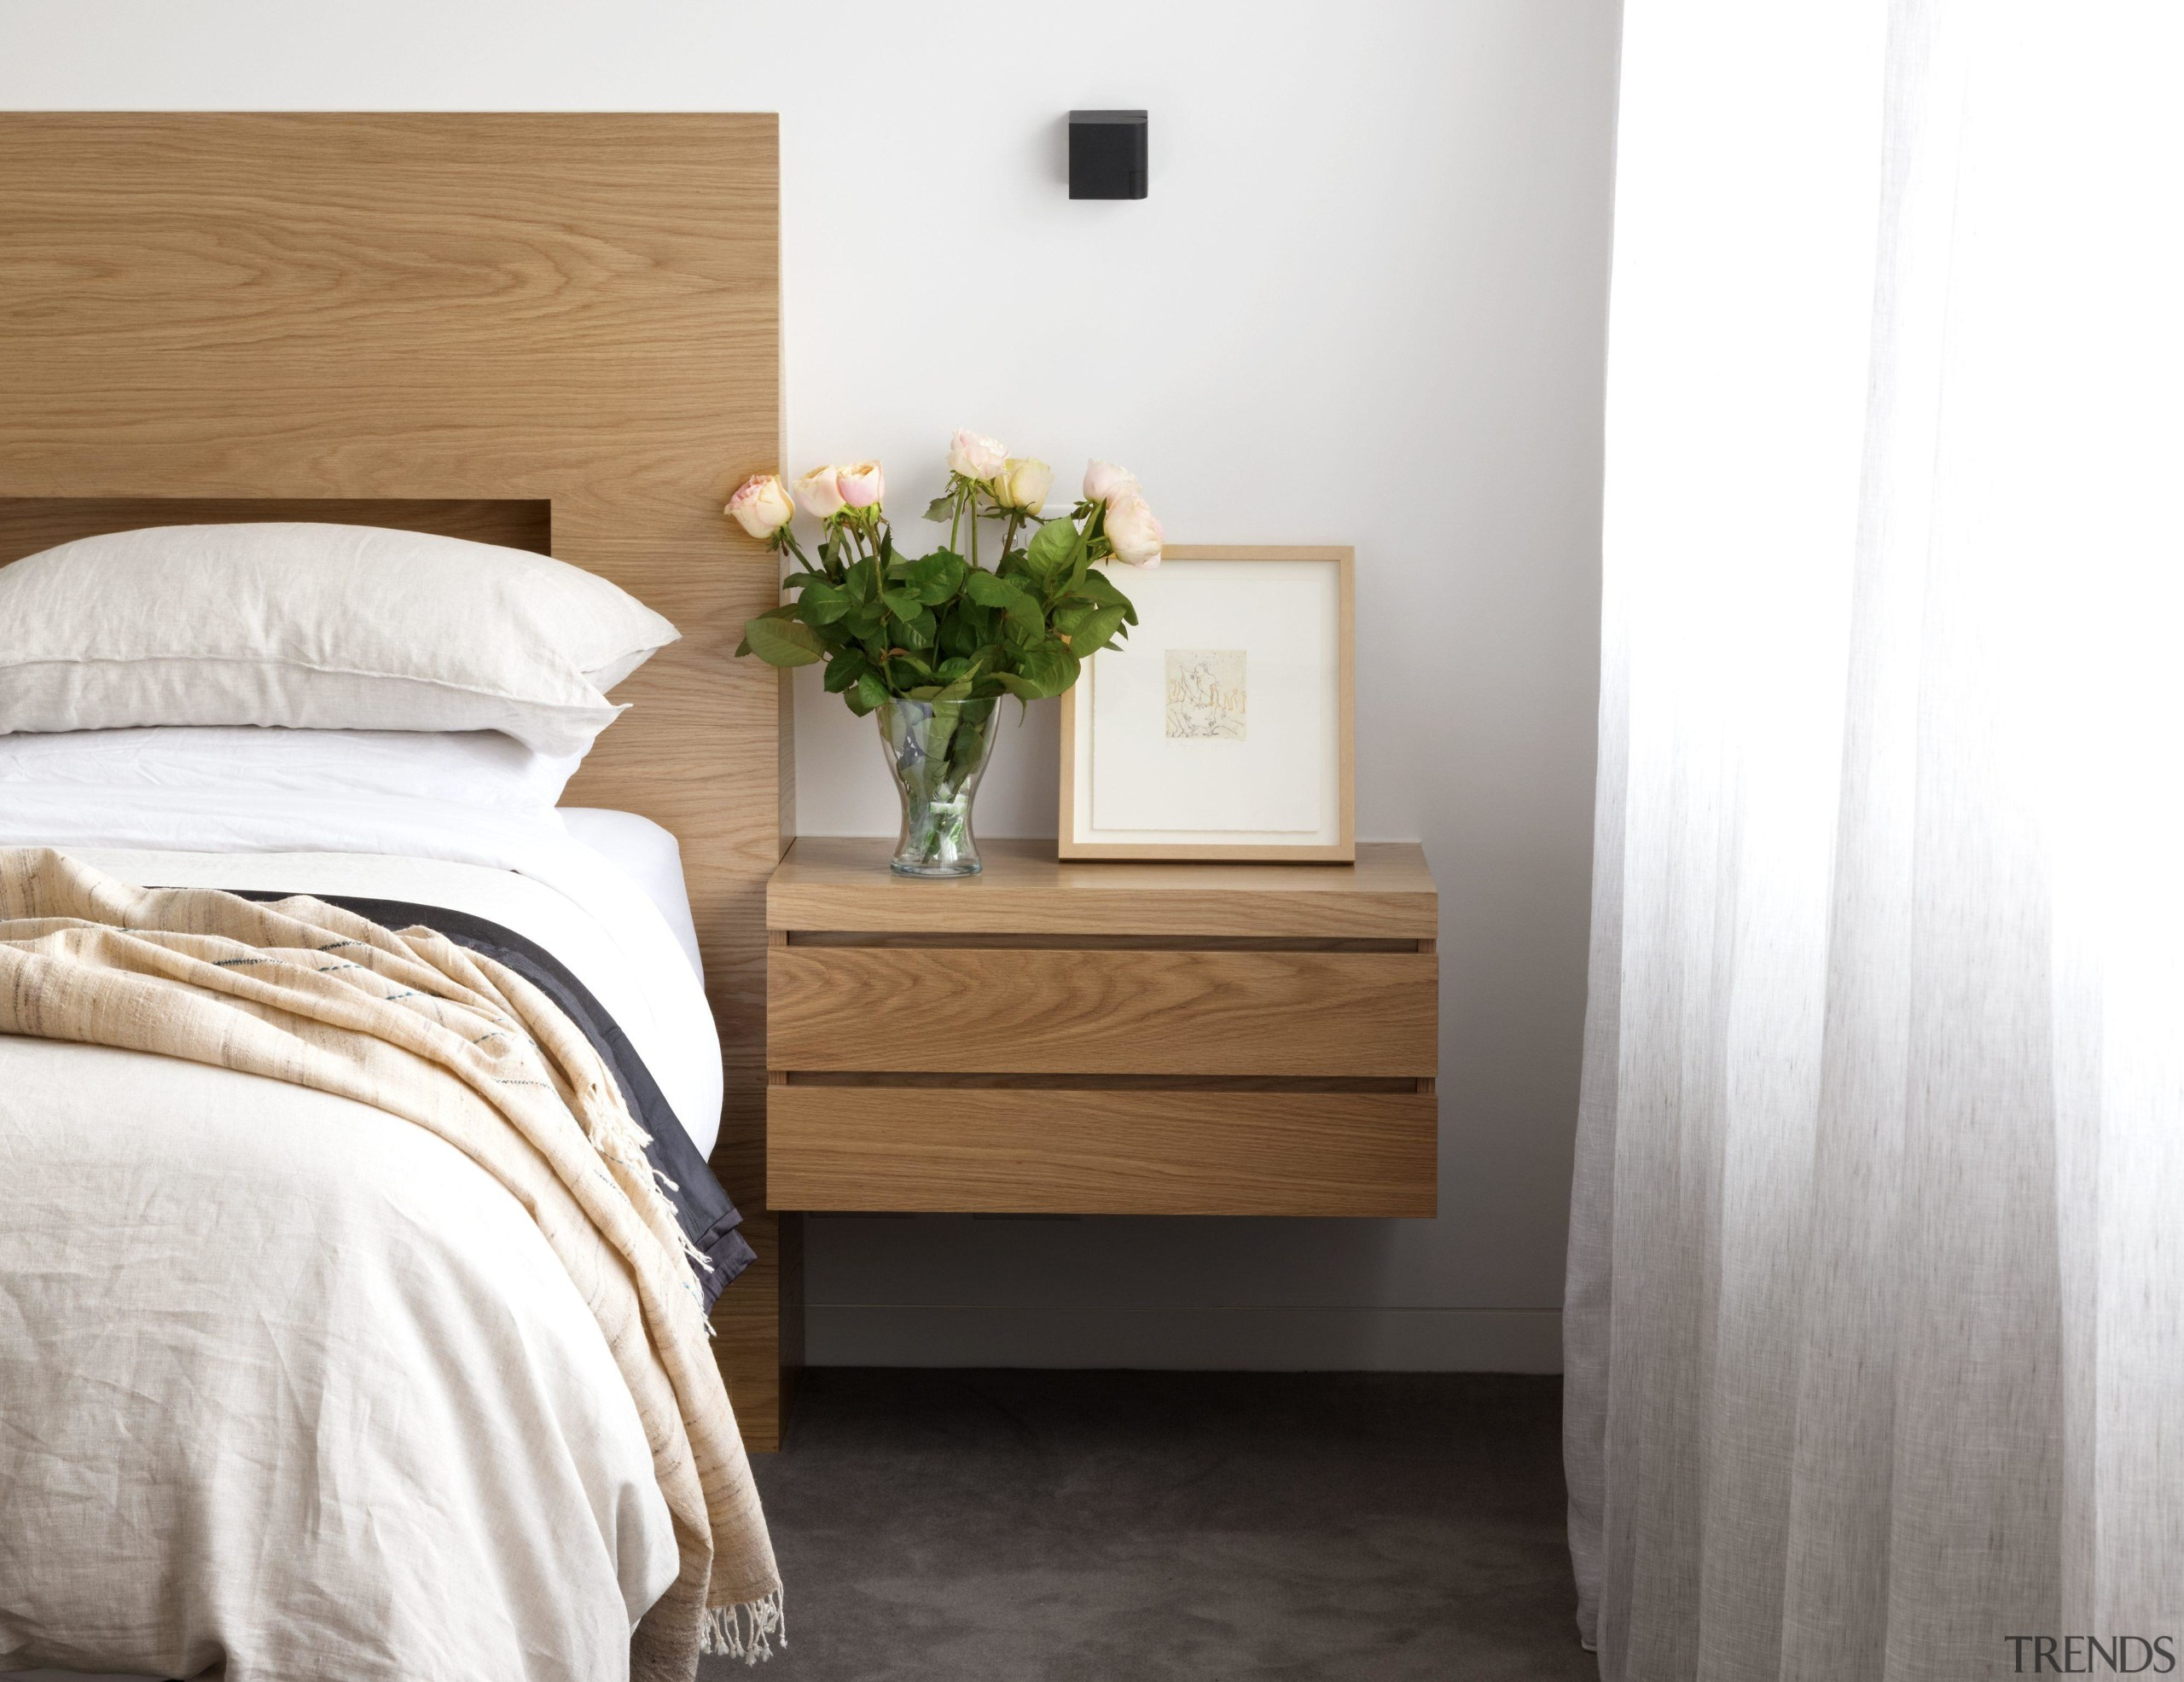 Cantilevering the side tables in the master bedroom architecture, bed, bed frame, bed sheet, bedding, bedroom, chest of drawers, comfort, drawer, duvet, floor, flooring, furniture, hardwood, home, house, interior design, mattress, nightstand, property, room, table, textile, wall, wood, white